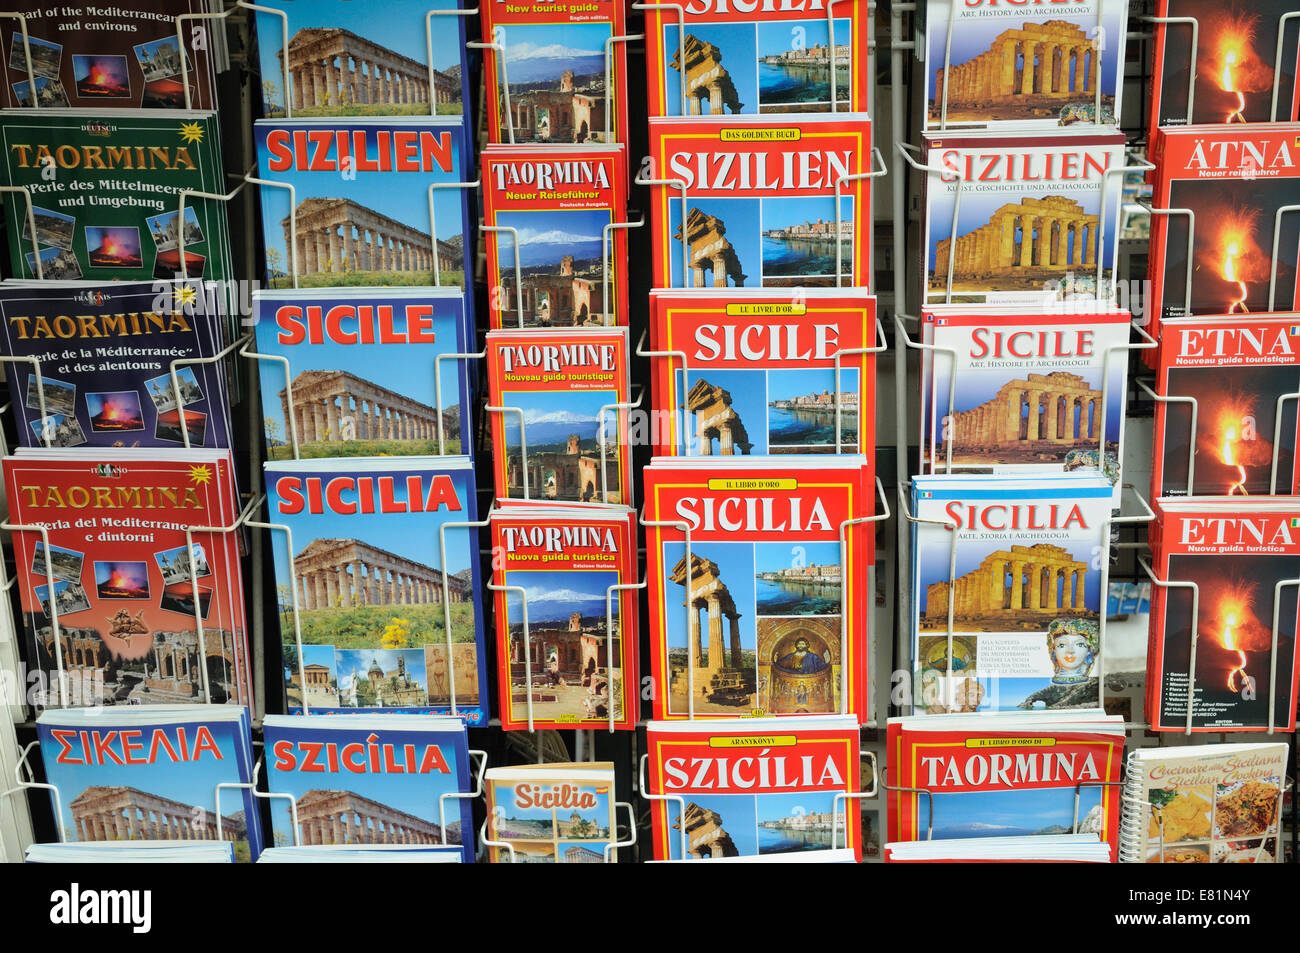 Guide books of Sicily and Taormina on sale at Taormina town Sicily Italy - Stock Image